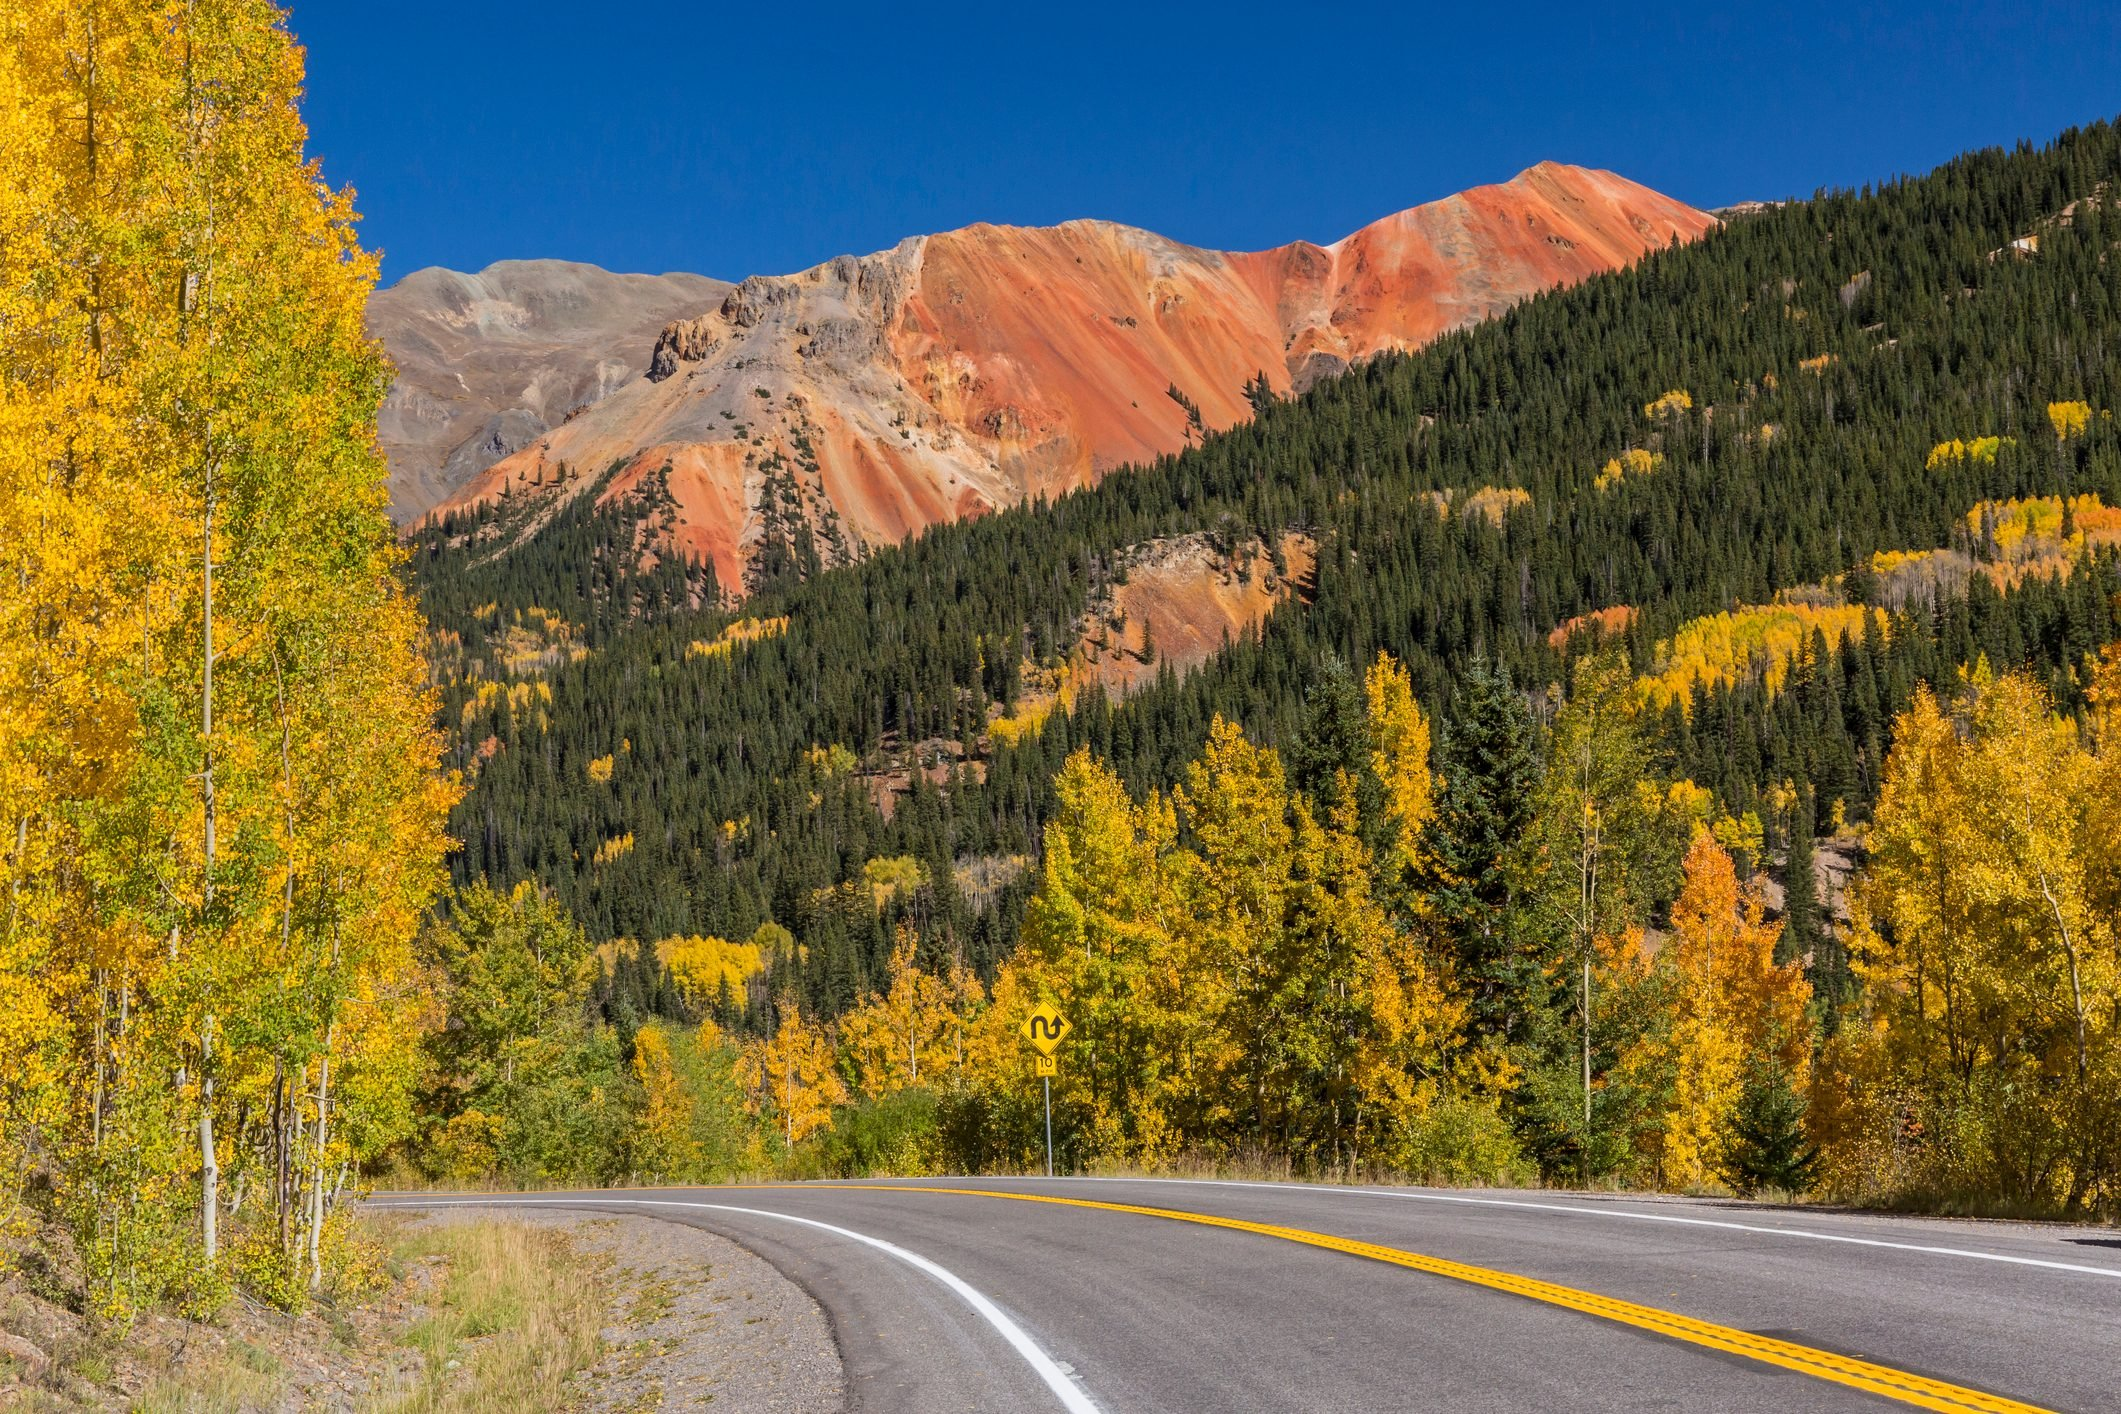 Golden aspens on Red Mountain Pass on the Million Dollar Highway in the Uncompahgre National Forest, Colorado